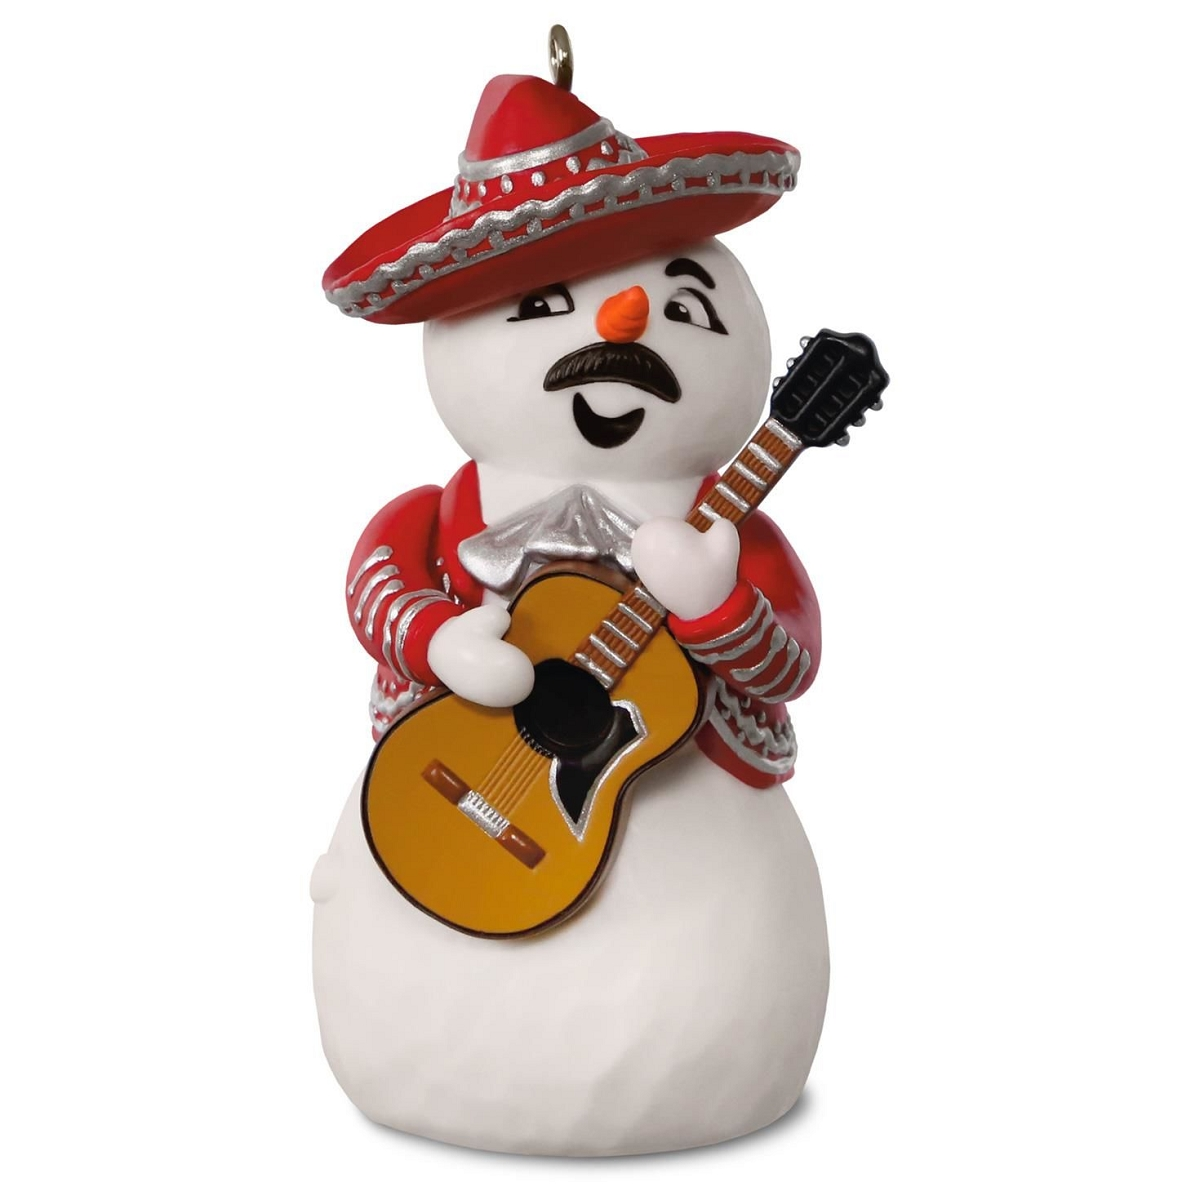 2016 Feliz Navidad Snowman Hallmark Keepsake Ornament Hooked On Hallmark Ornaments